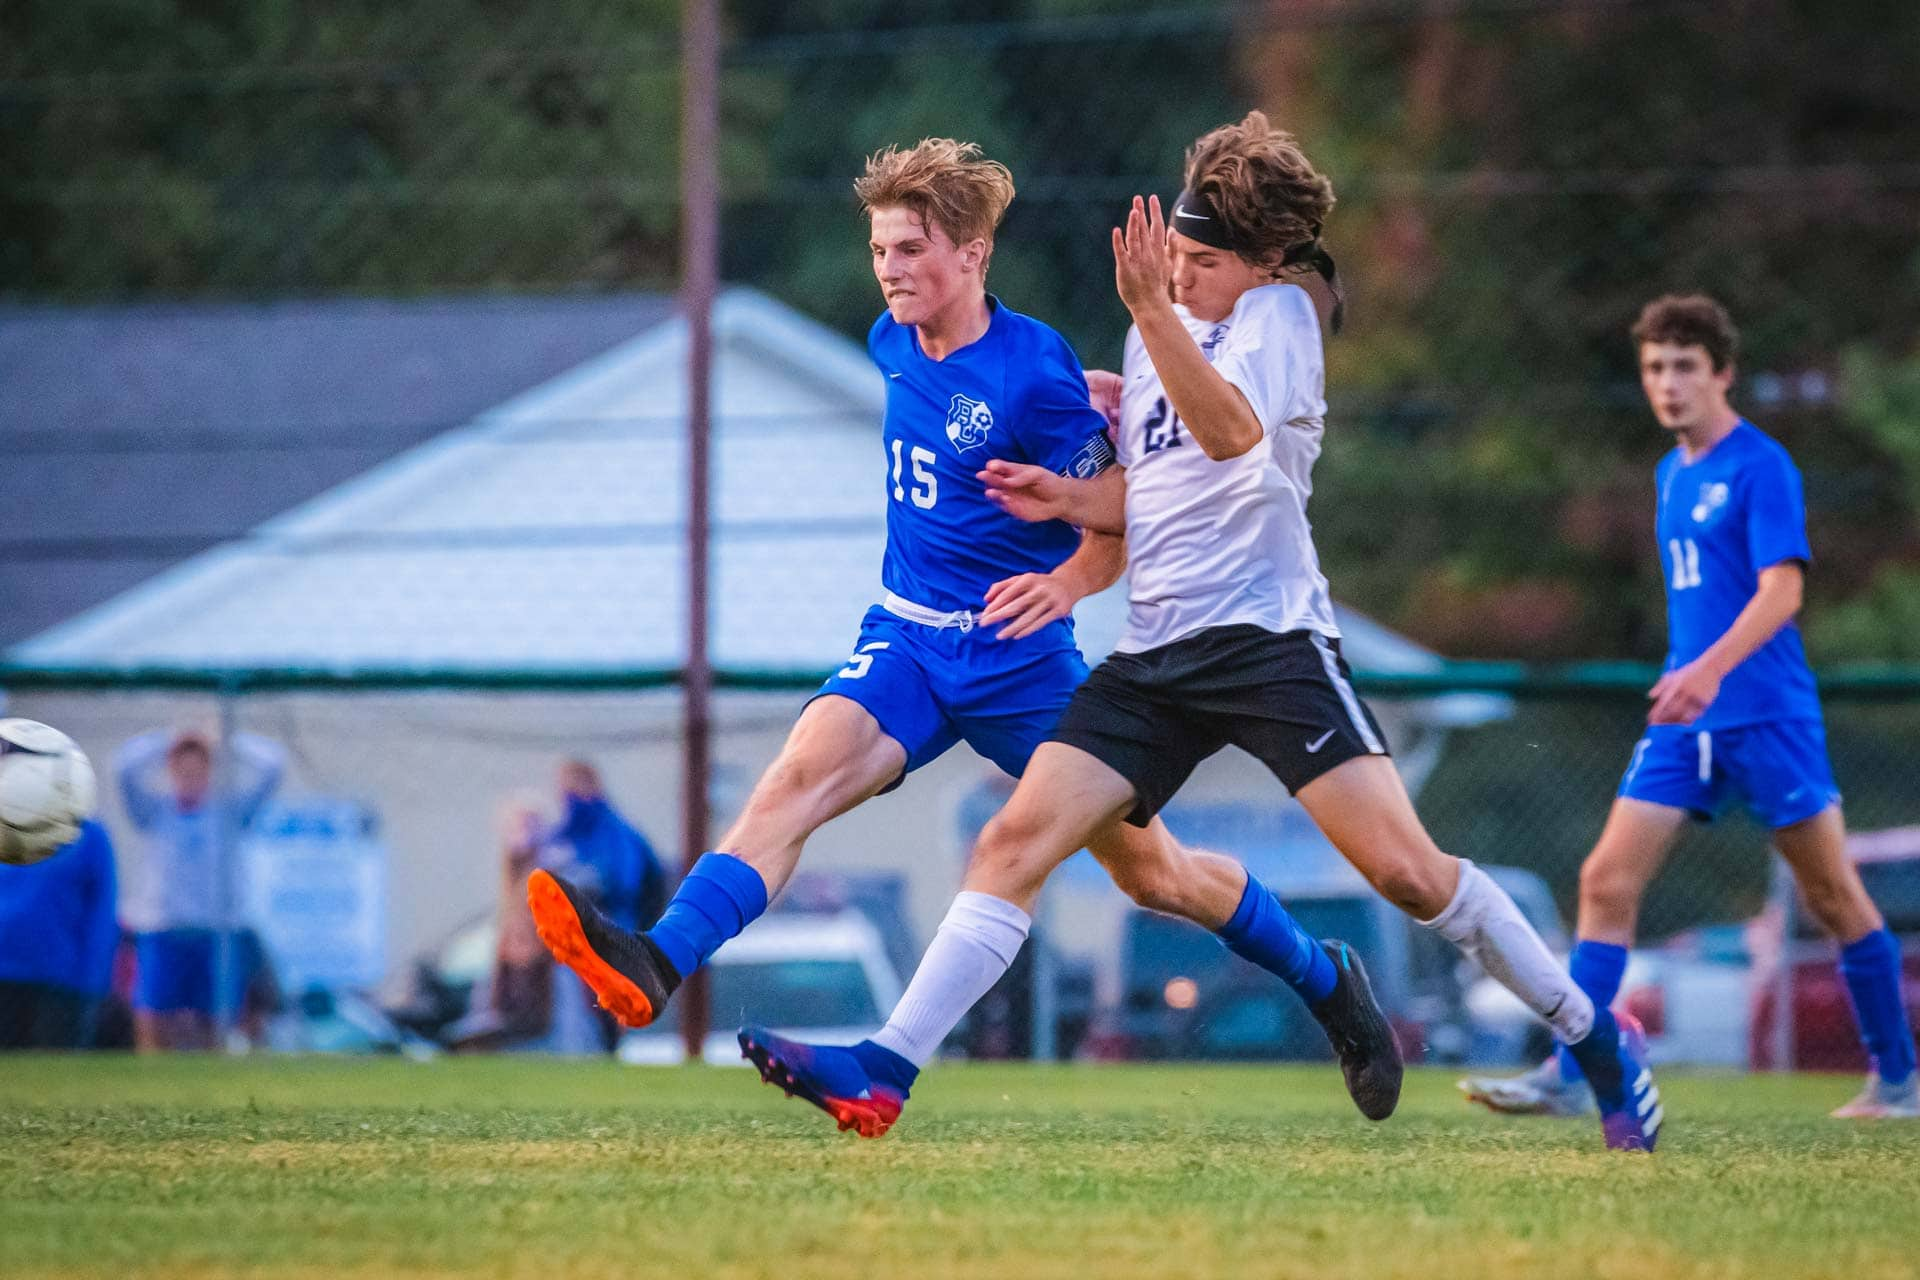 Sports Gallery: Soccer Bucs drop tight 1-0 decision after spirited match with Fairmont Senior